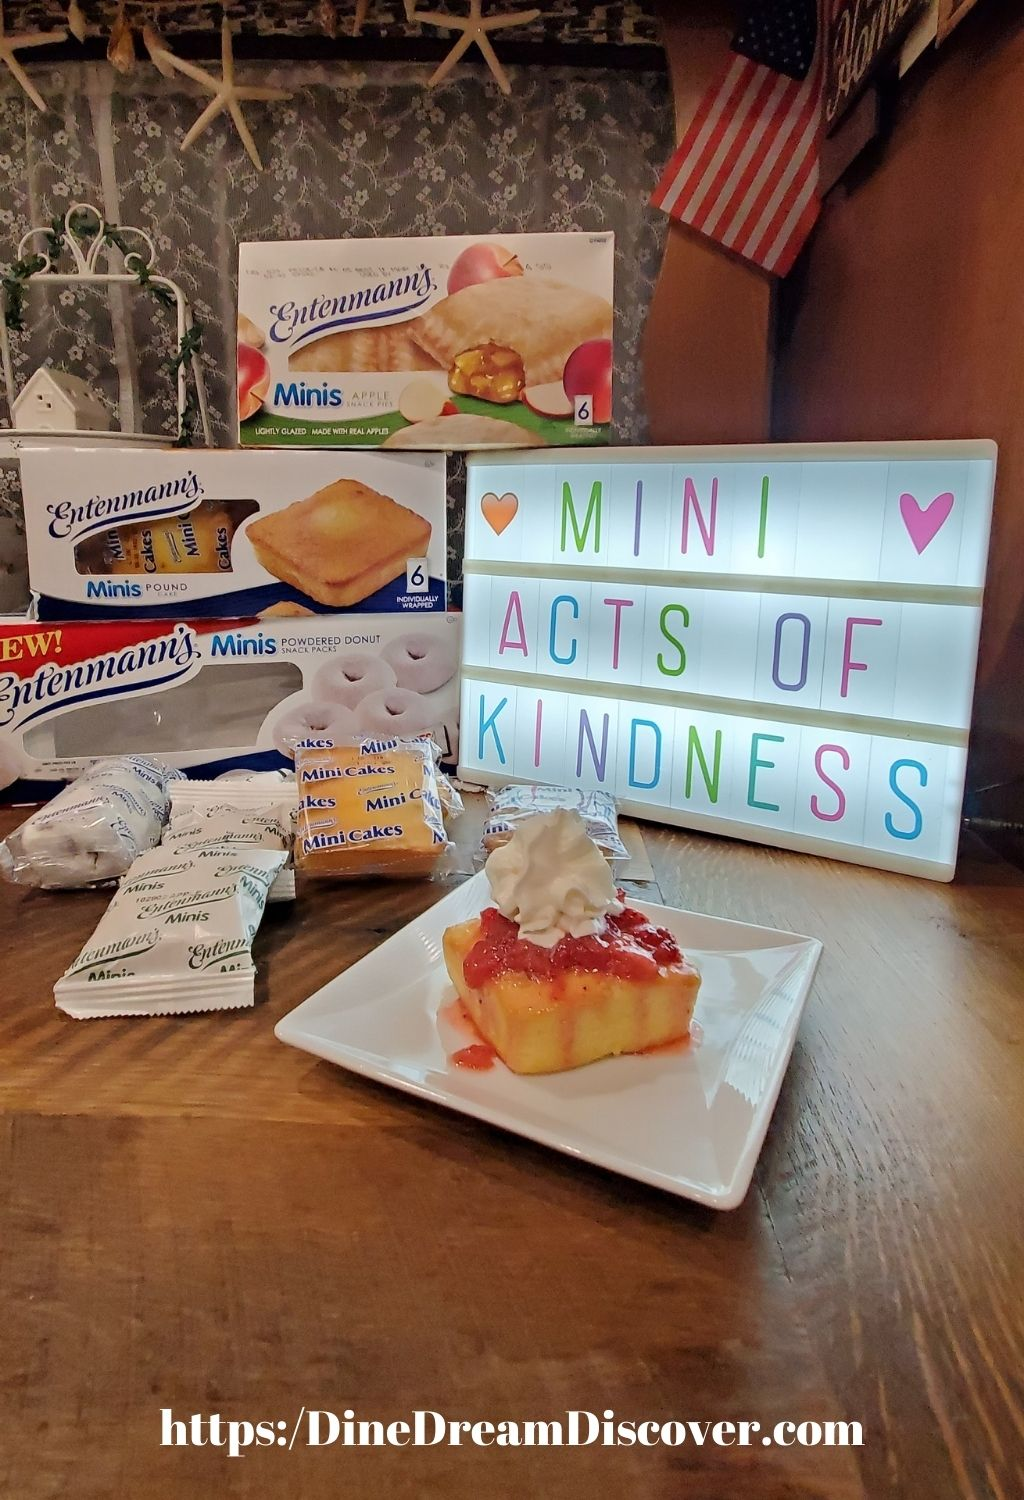 Mini Acts of Kindness 5K Giveaway